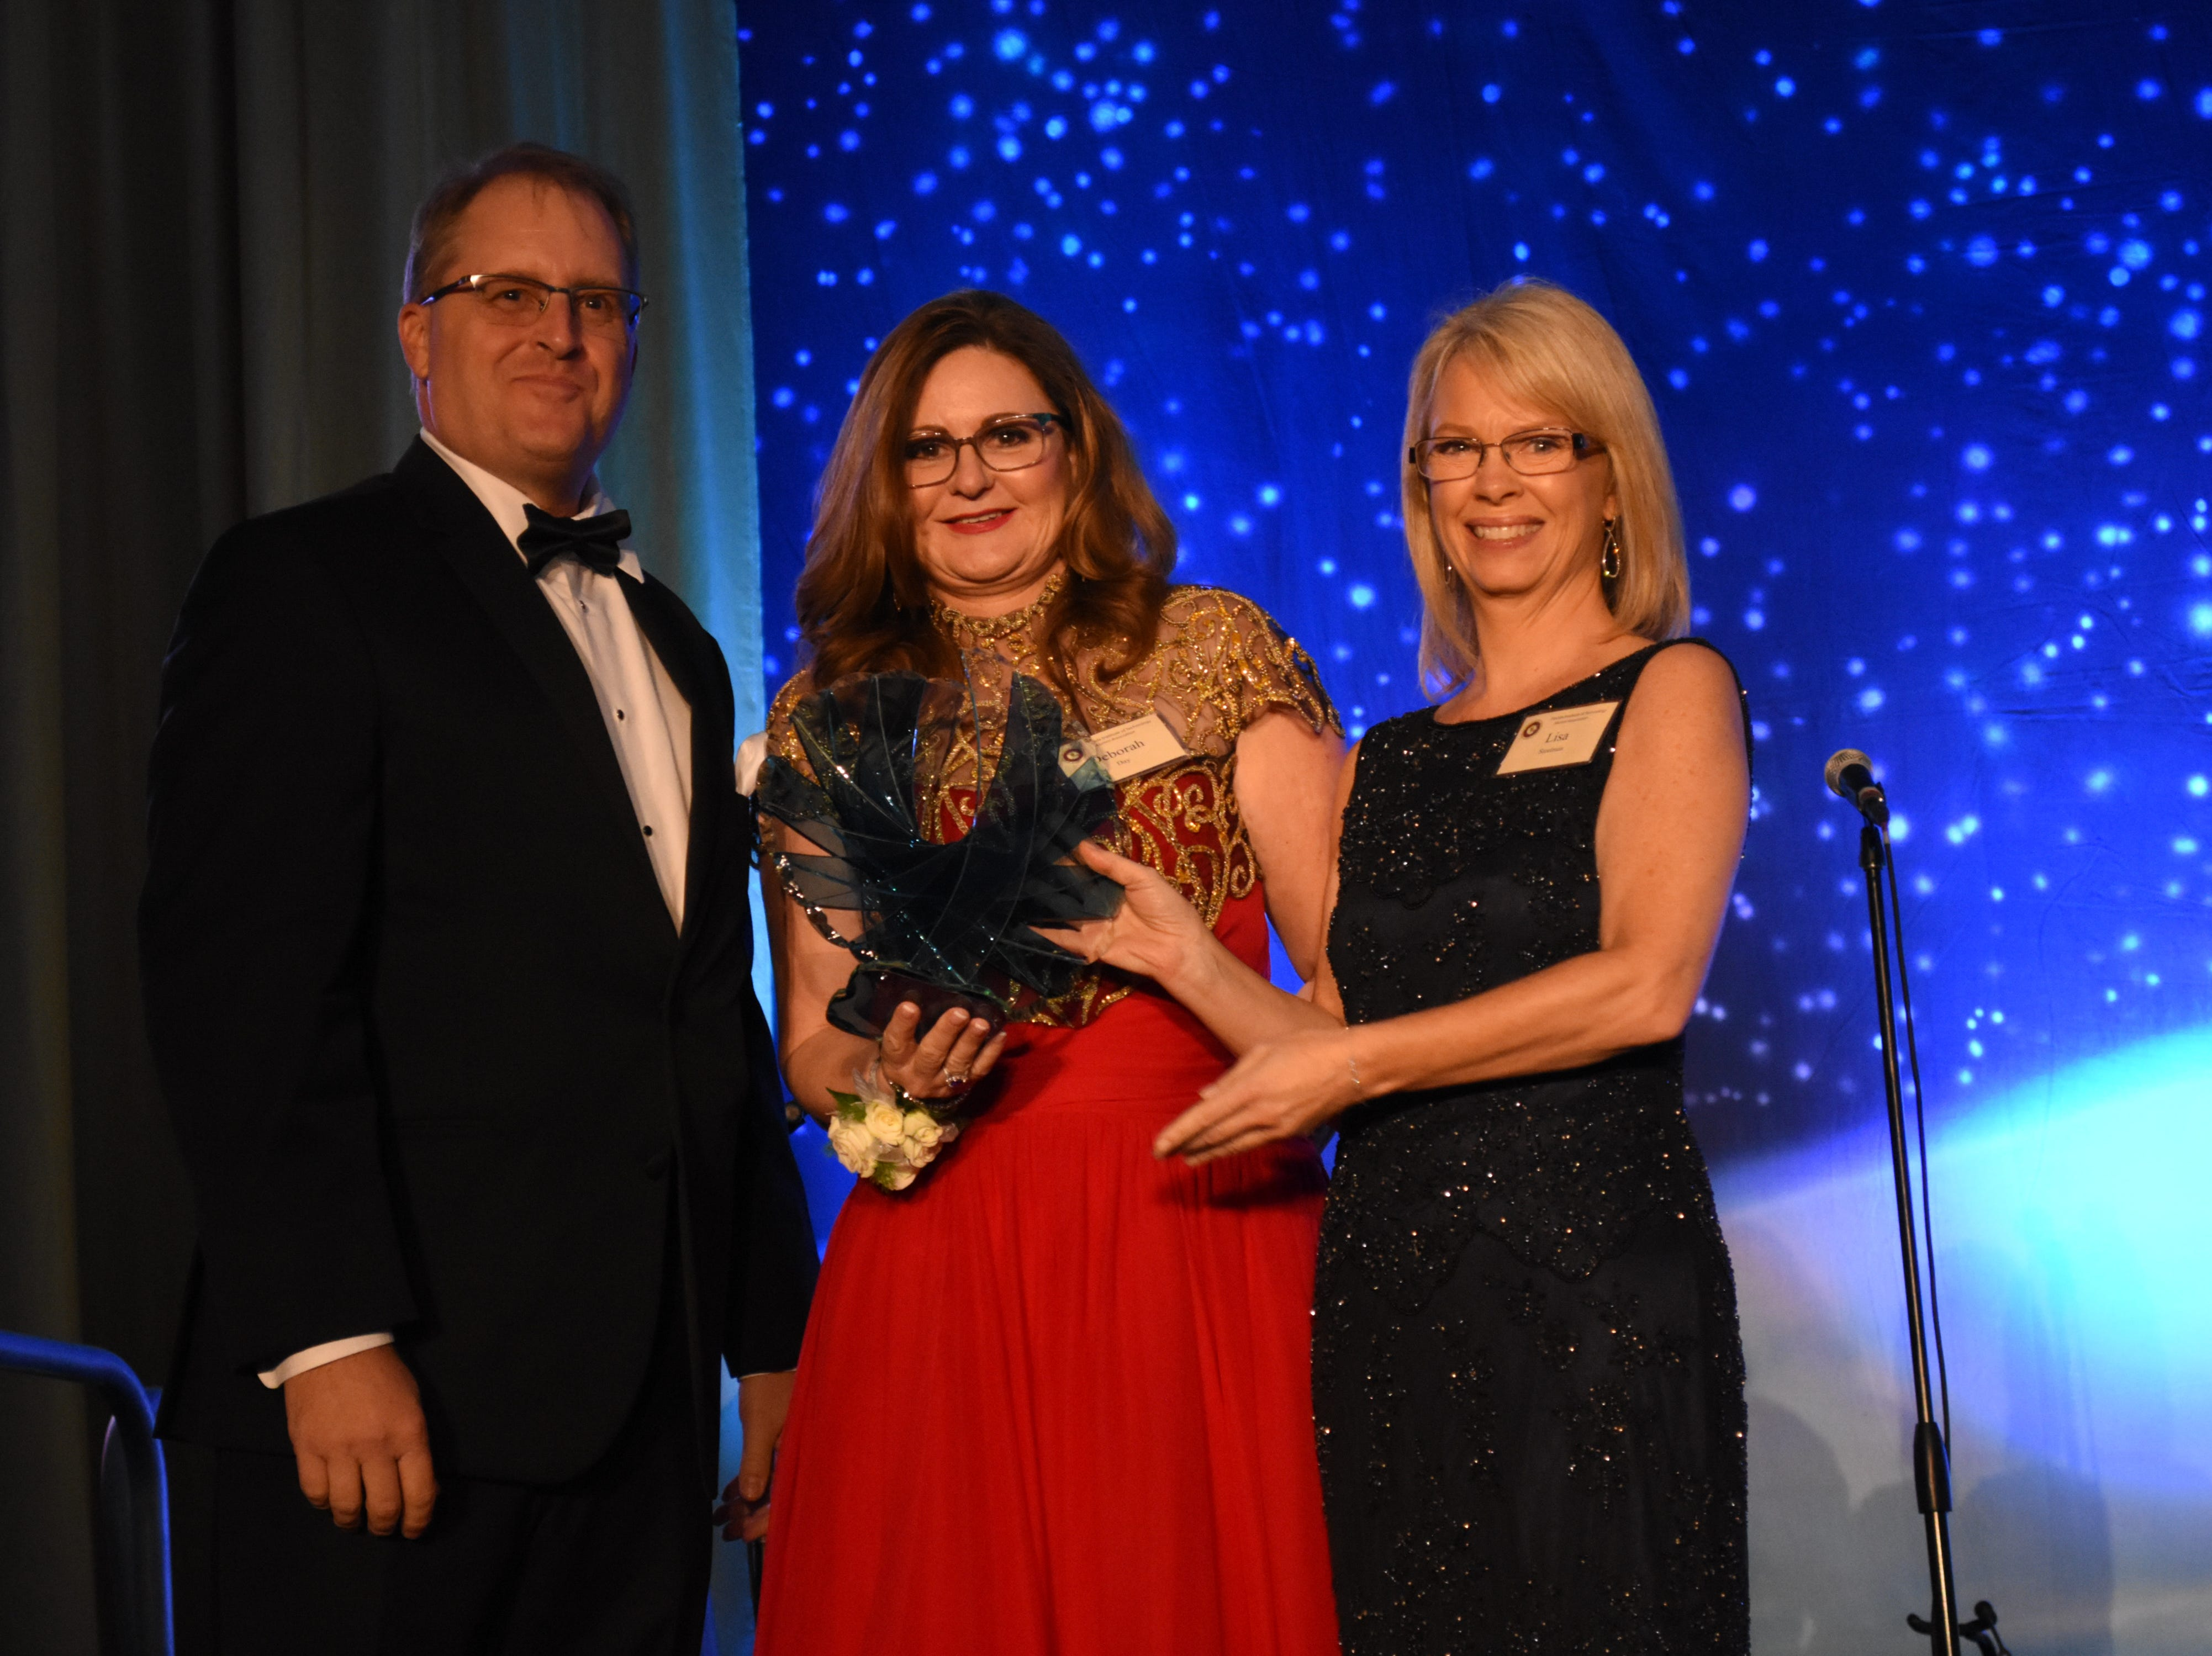 The College of Psychology and Liberal Arts Outstanding Alumni award is presented to Deborah O. Day at Florida Tech's 60th Anniversary Homecoming Gala Oct. 13, 2018, at the Clemente Center.